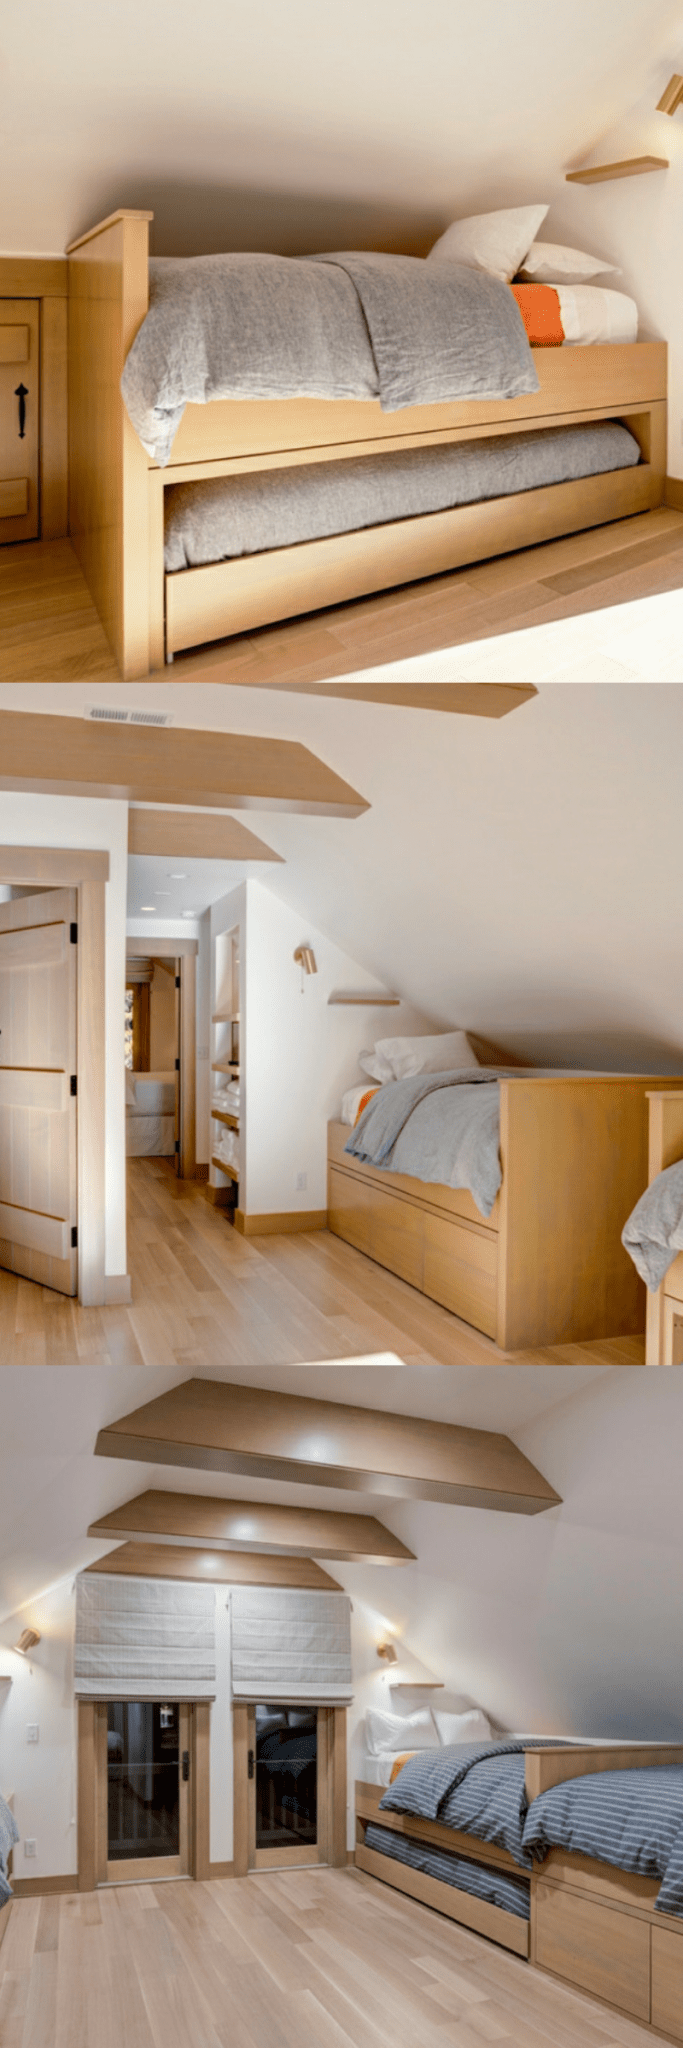 The Comfortable Kids Room Ideas For Boys And Girls 2020